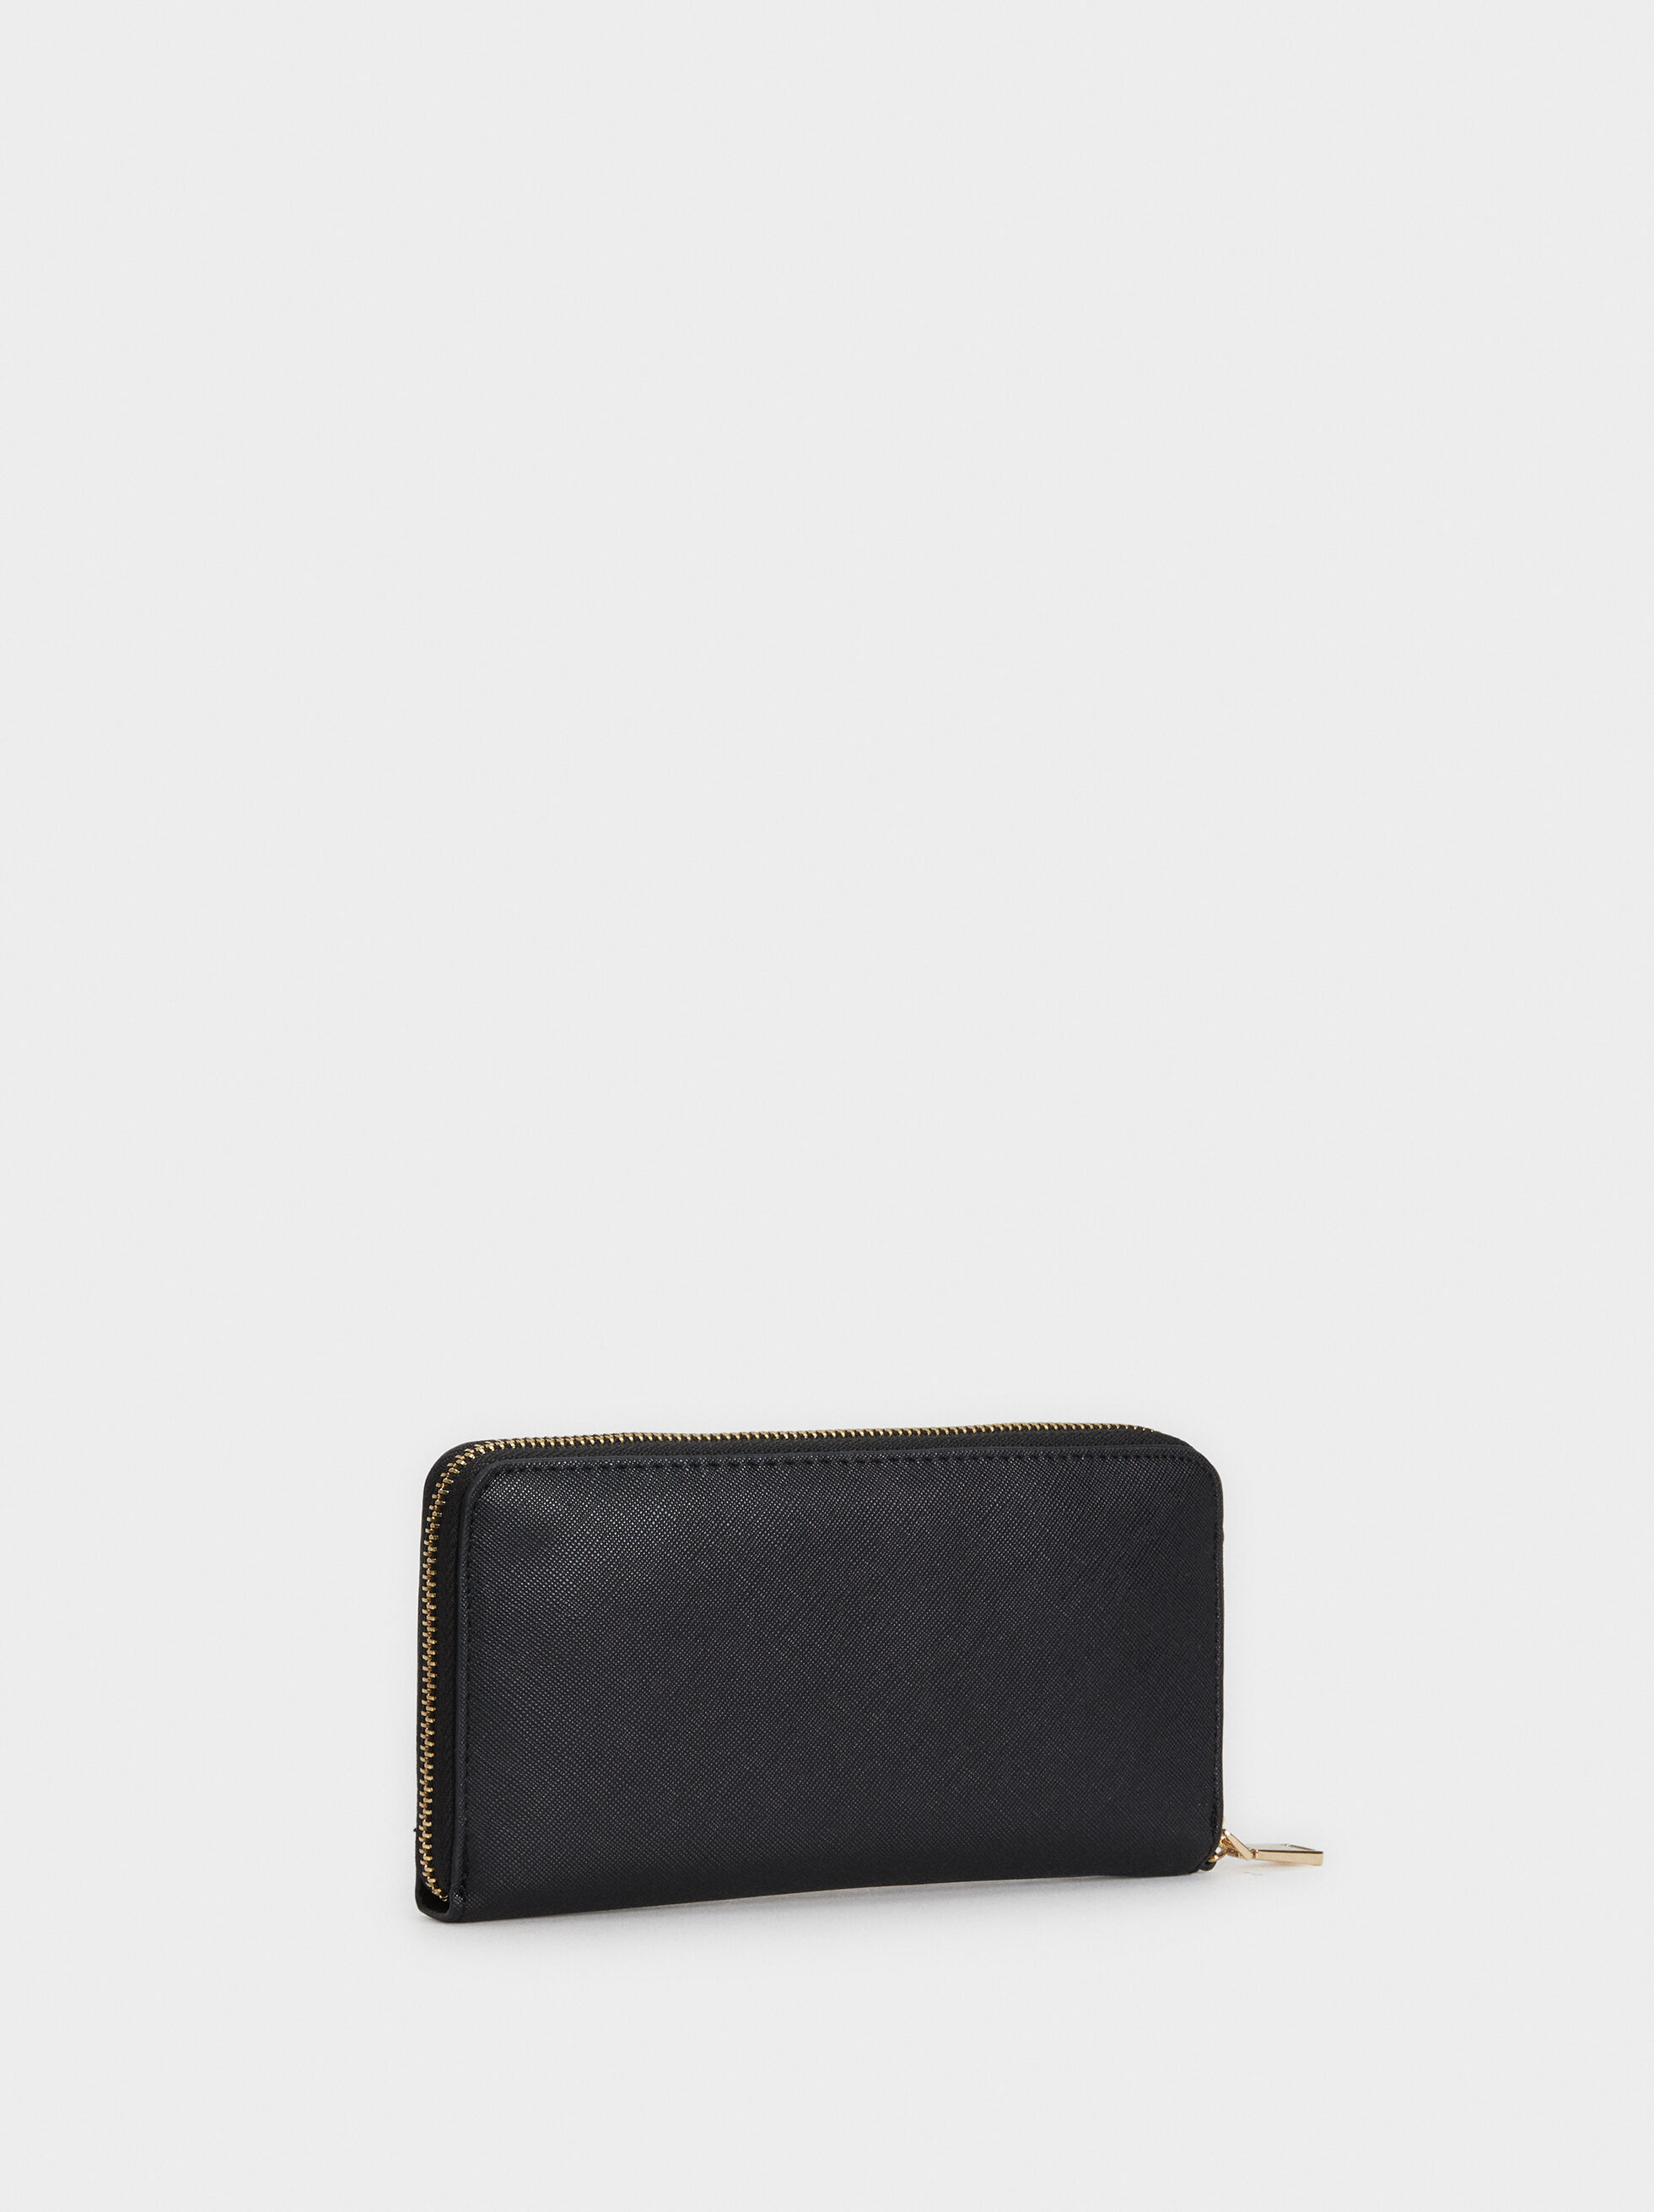 Large Wallet With Handle, Black, hi-res